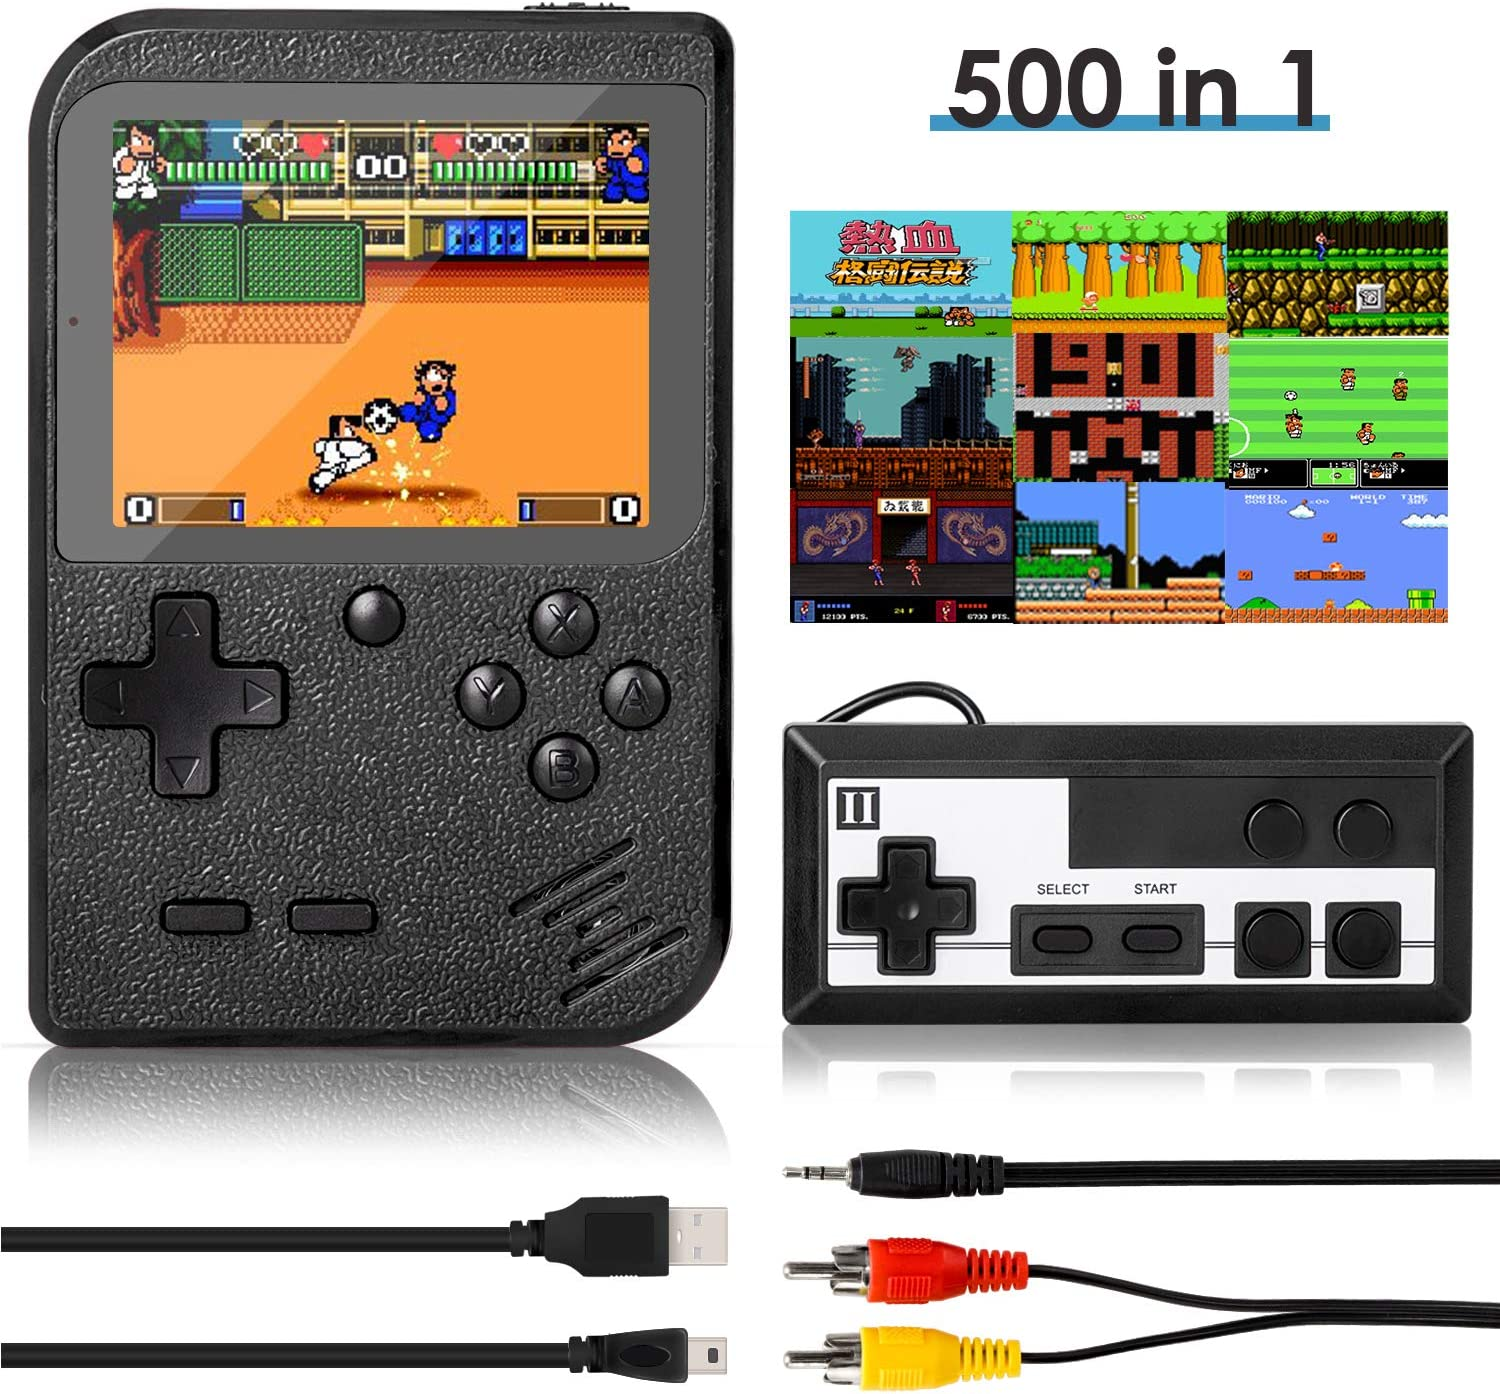 Handheld Game Console, Retro Mini Game Player with 500 Classic FC Games, 3.0 Inch Screen 800mAh Rechargeable Battery Portable Game Console Support TV Connection & Two Players for Kids Adults (Black)